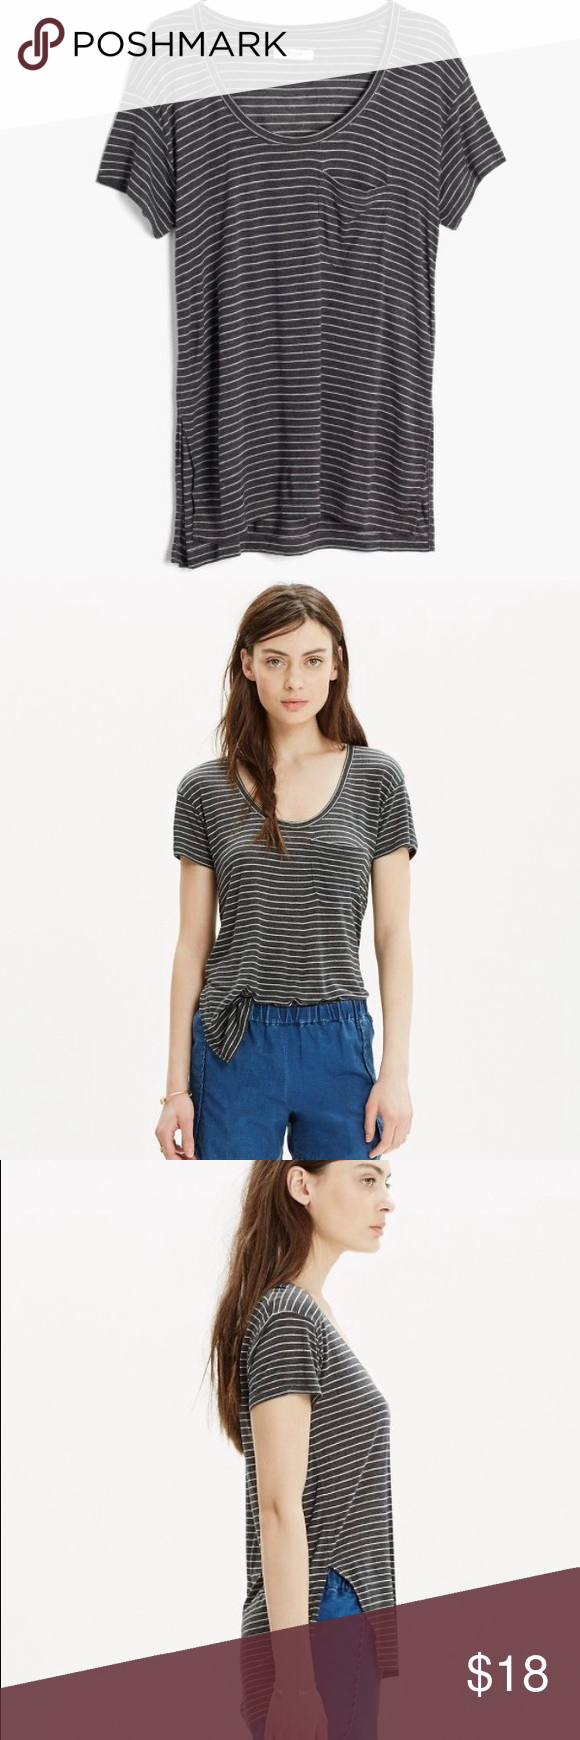 Madewell Anthem Short-Sleeve Scoop Tee This striped scoopneck pocket tee has high side slots for an artful-meets-effortless look. Drapey fit. Viscose. Style #C5836 Madewell Tops Tees - Short Sleeve